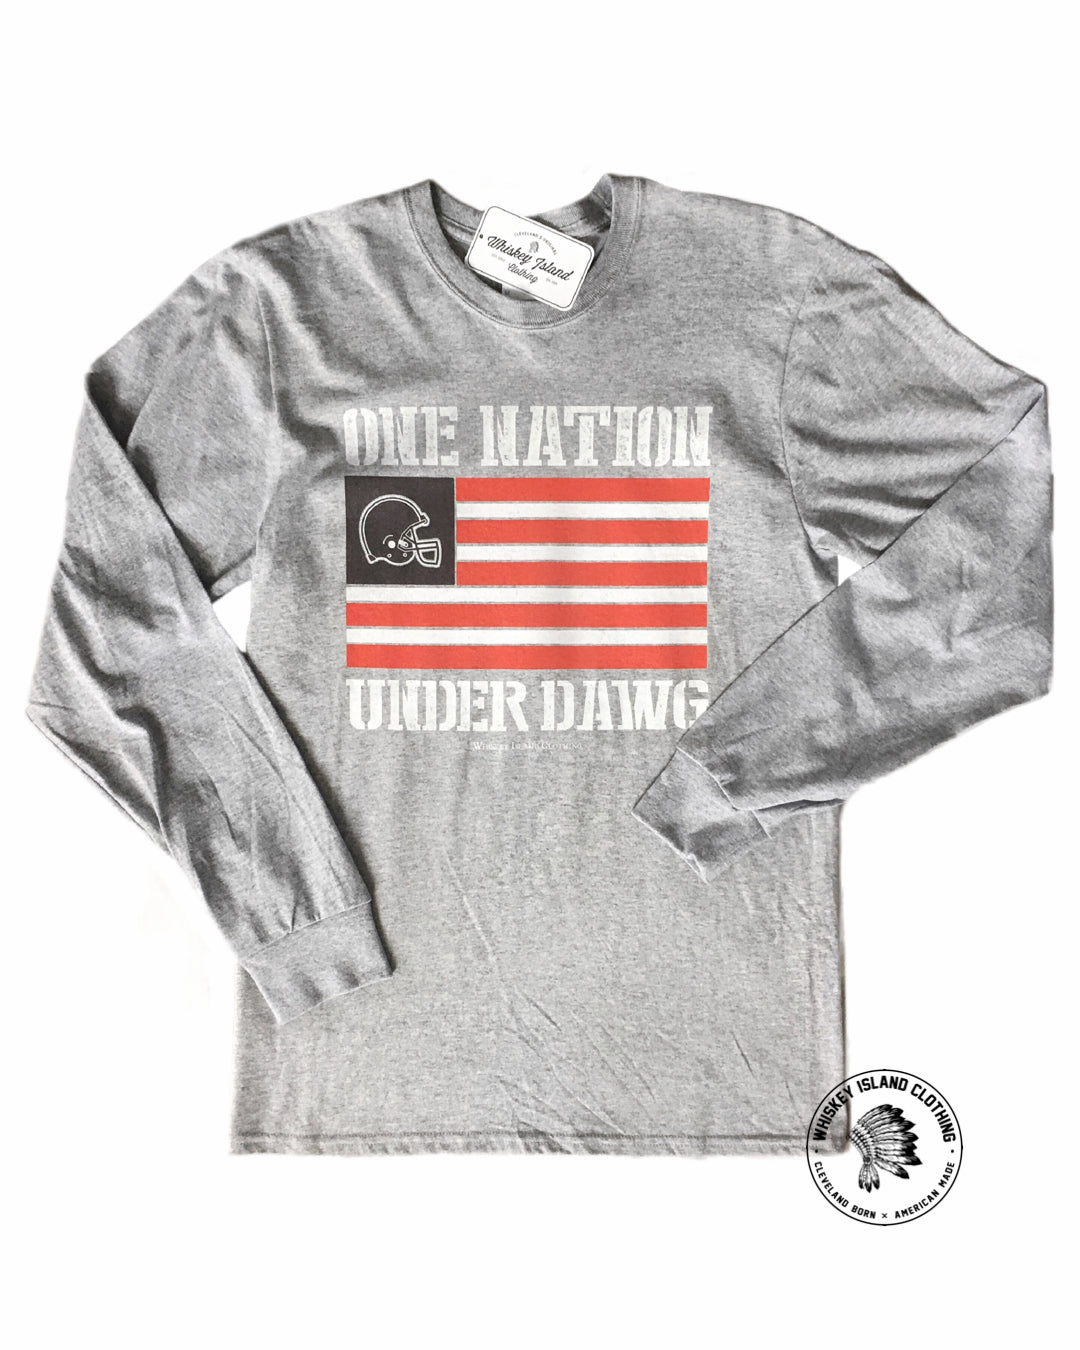 One Nation - Unisex Long Sleeve - Whiskey Island Clothing